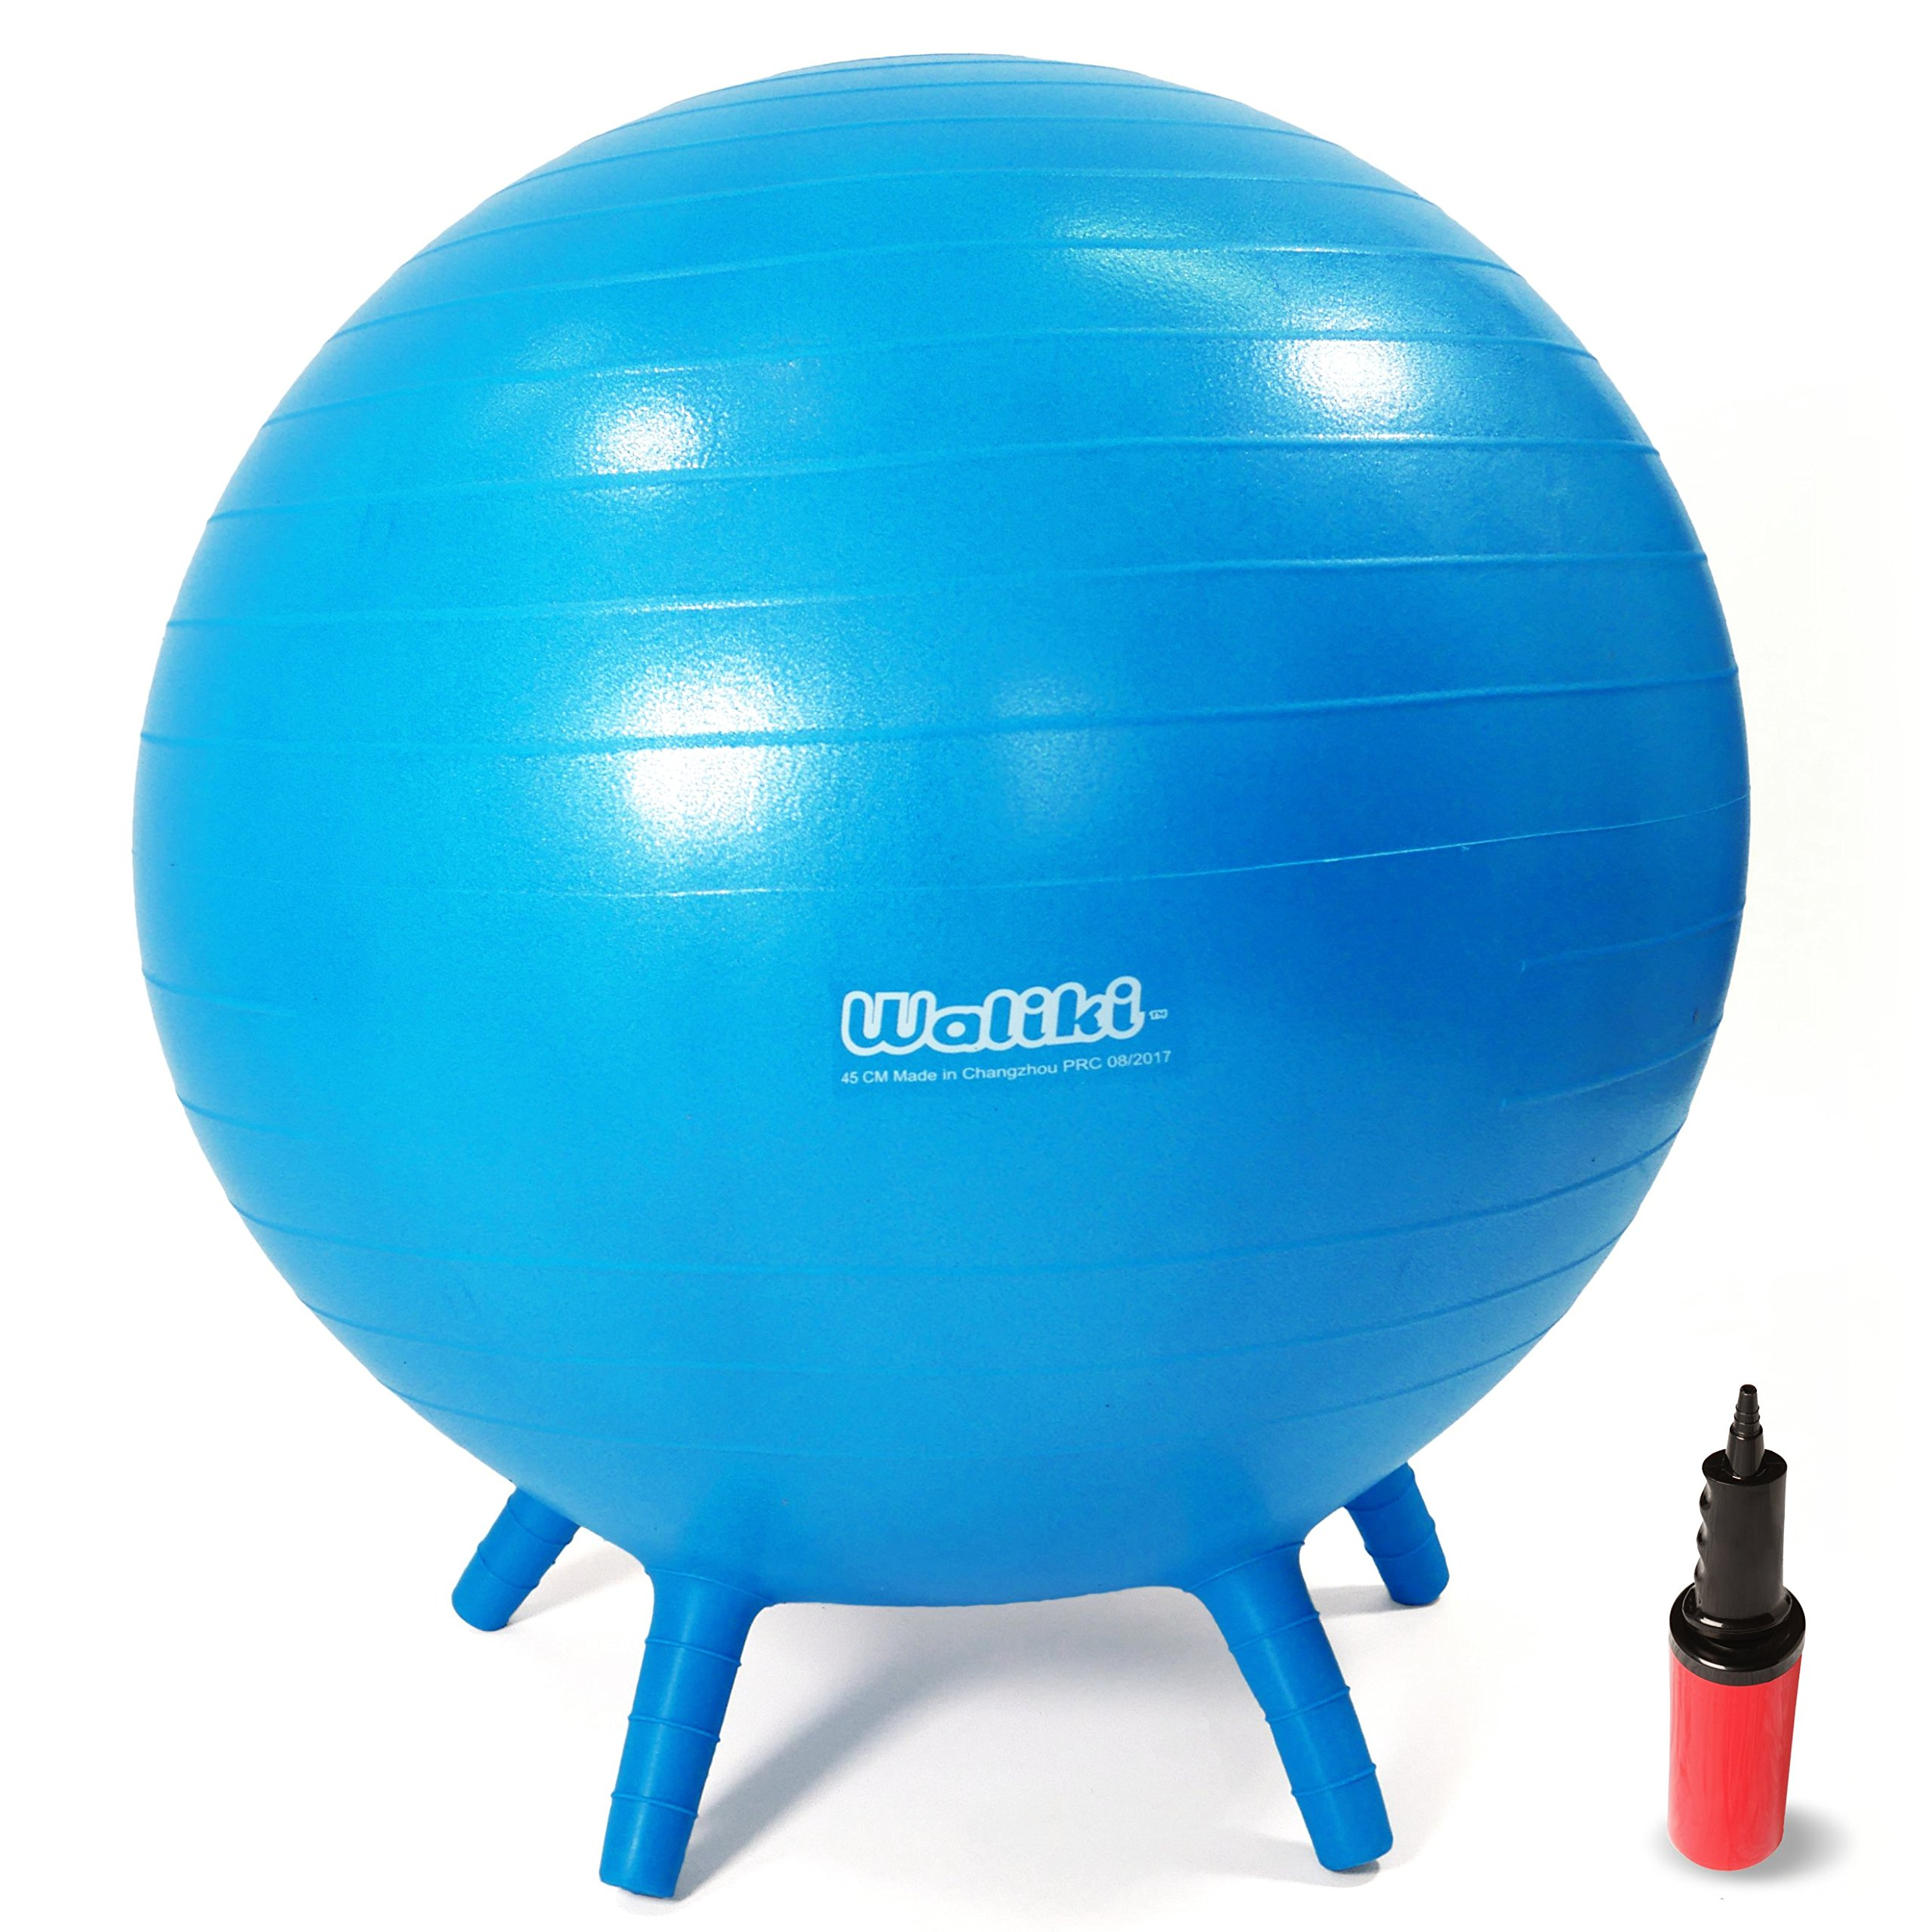 WALIKI TOYS Children's Chair Ball with Feet, Alternative Classroom Seating (Inflatable Balance Ball Chair With Stability Legs for School, Pump Included, 20''/50CM, Blue)